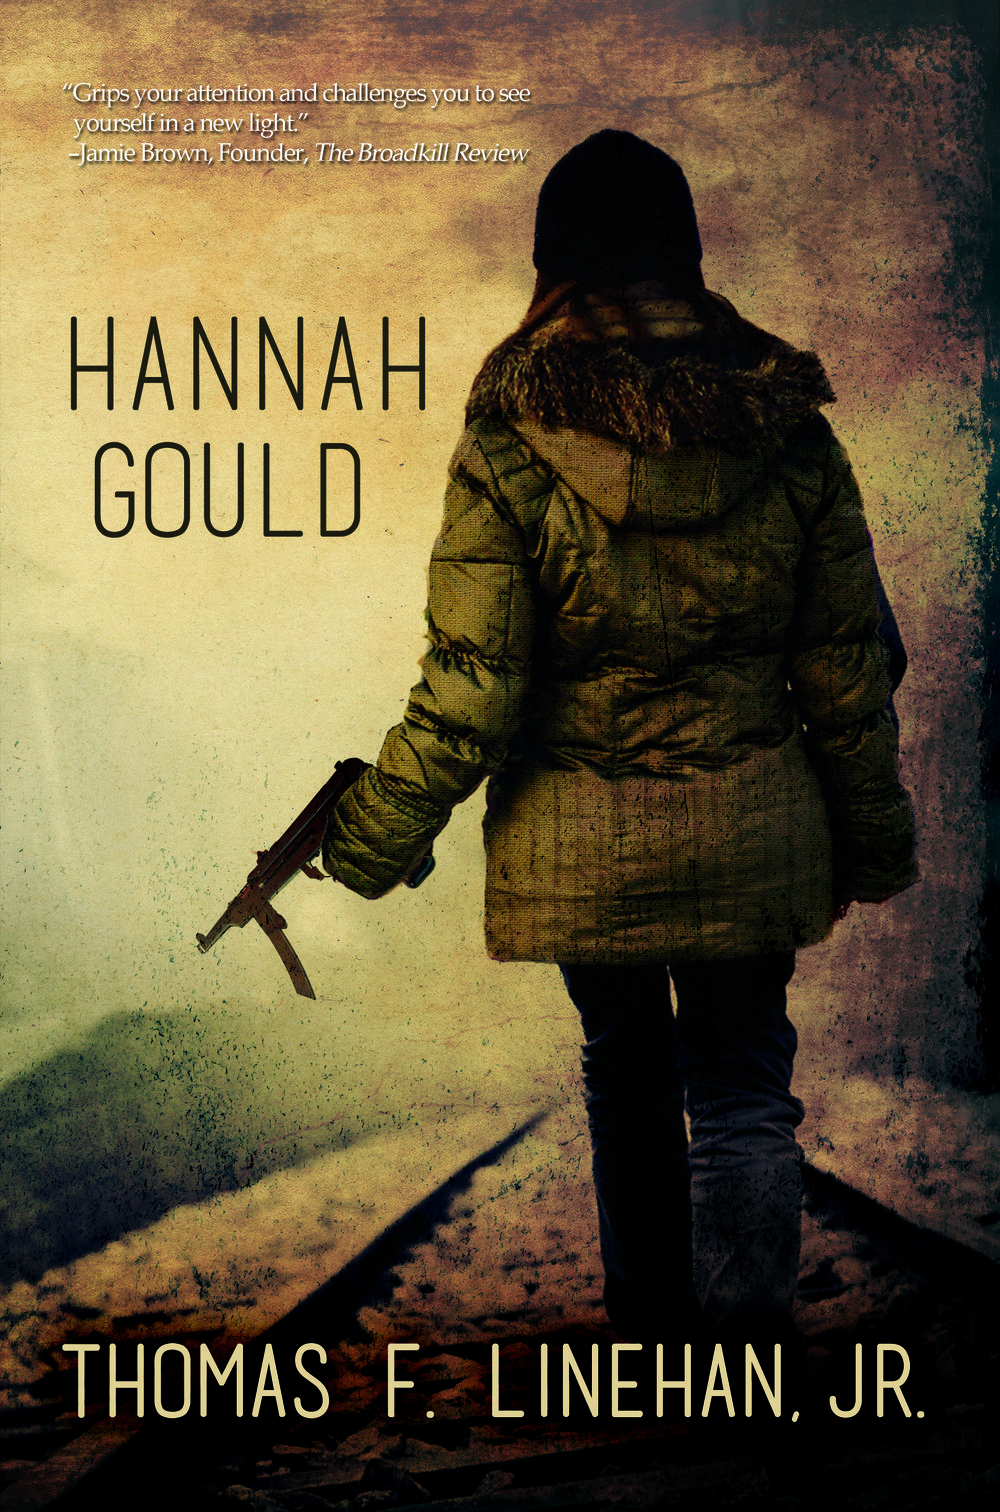 hannah gould front cover.jpg